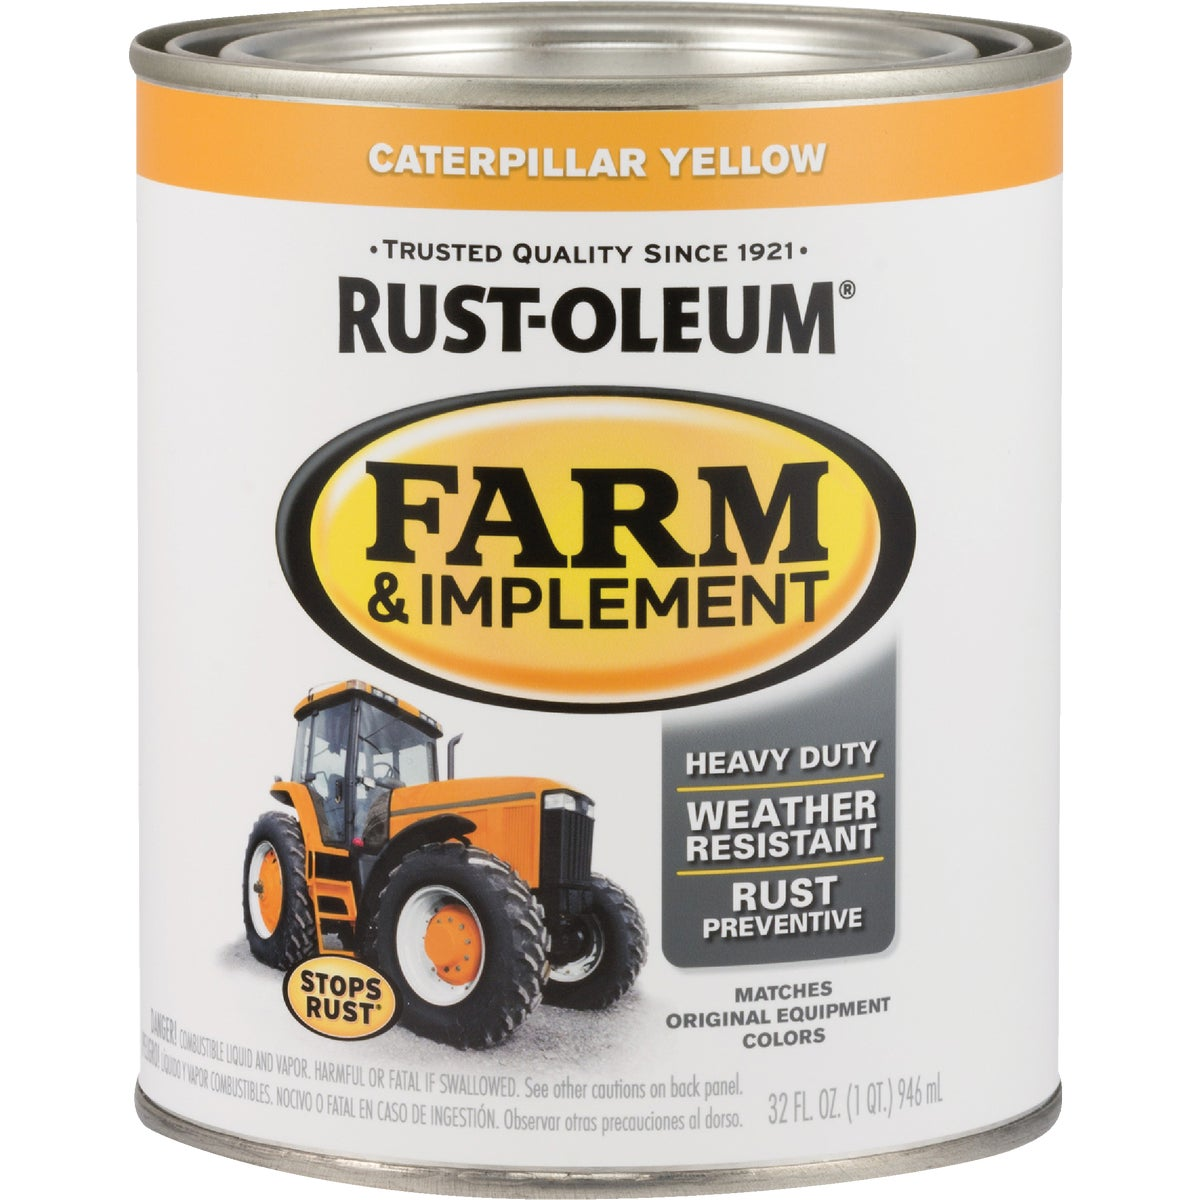 CAT YEL IMPLEMENT ENAMEL - 7449-502 by Rustoleum